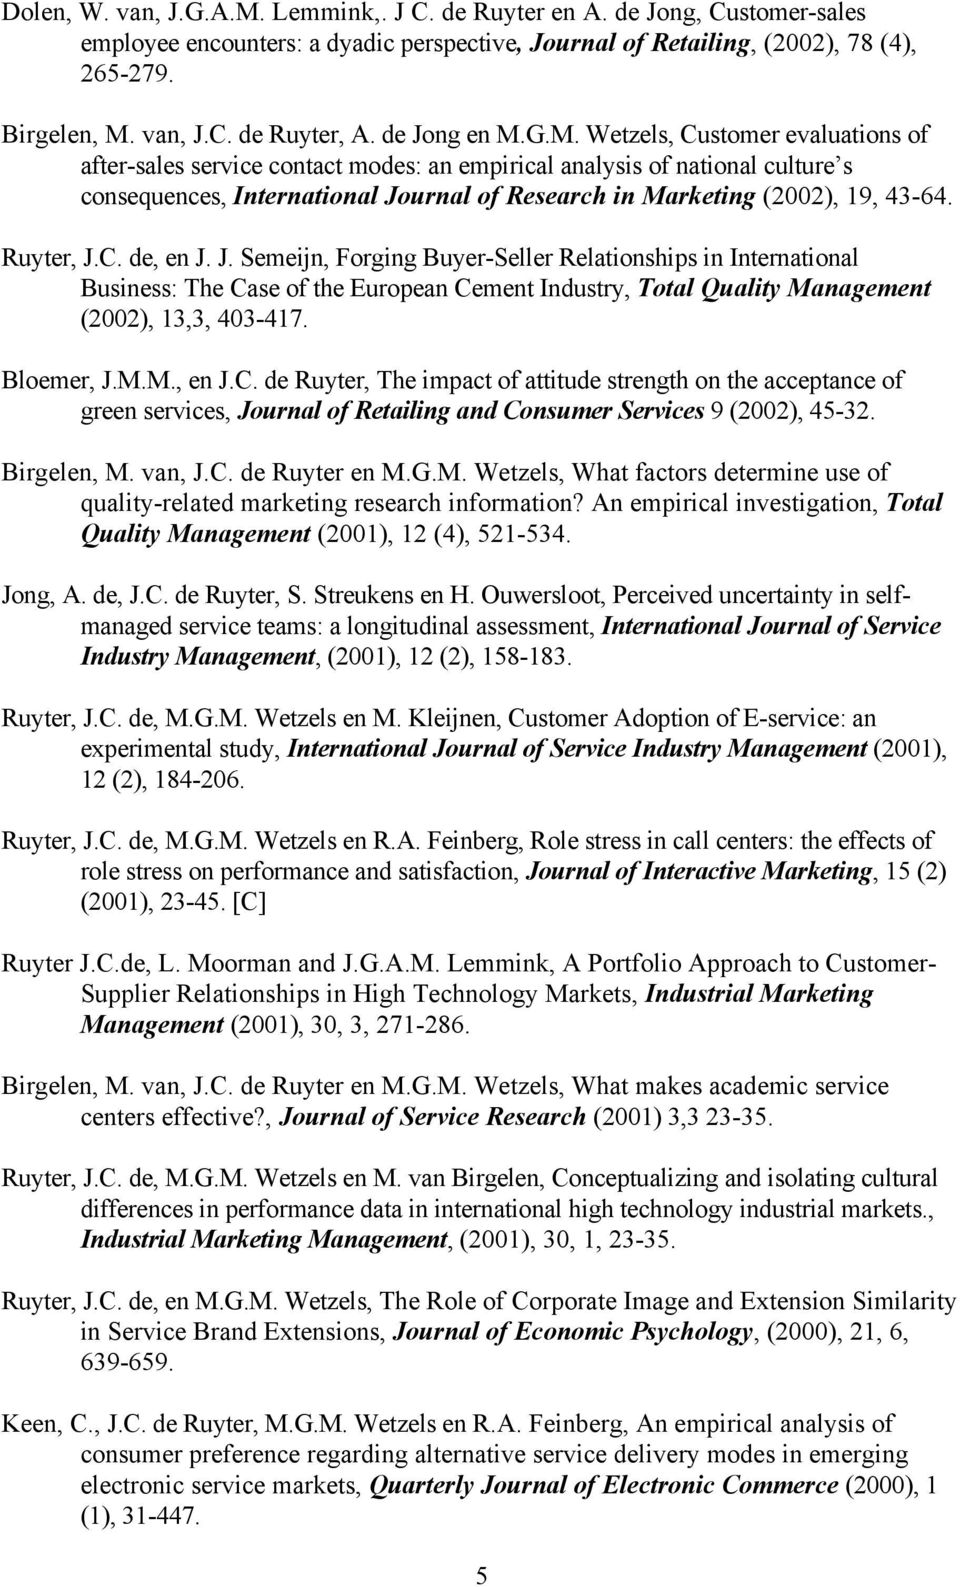 G.M. Wetzels, Customer evaluations of after-sales service contact modes: an empirical analysis of national culture s consequences, International Journal of Research in Marketing (2002), 19, 43-64.